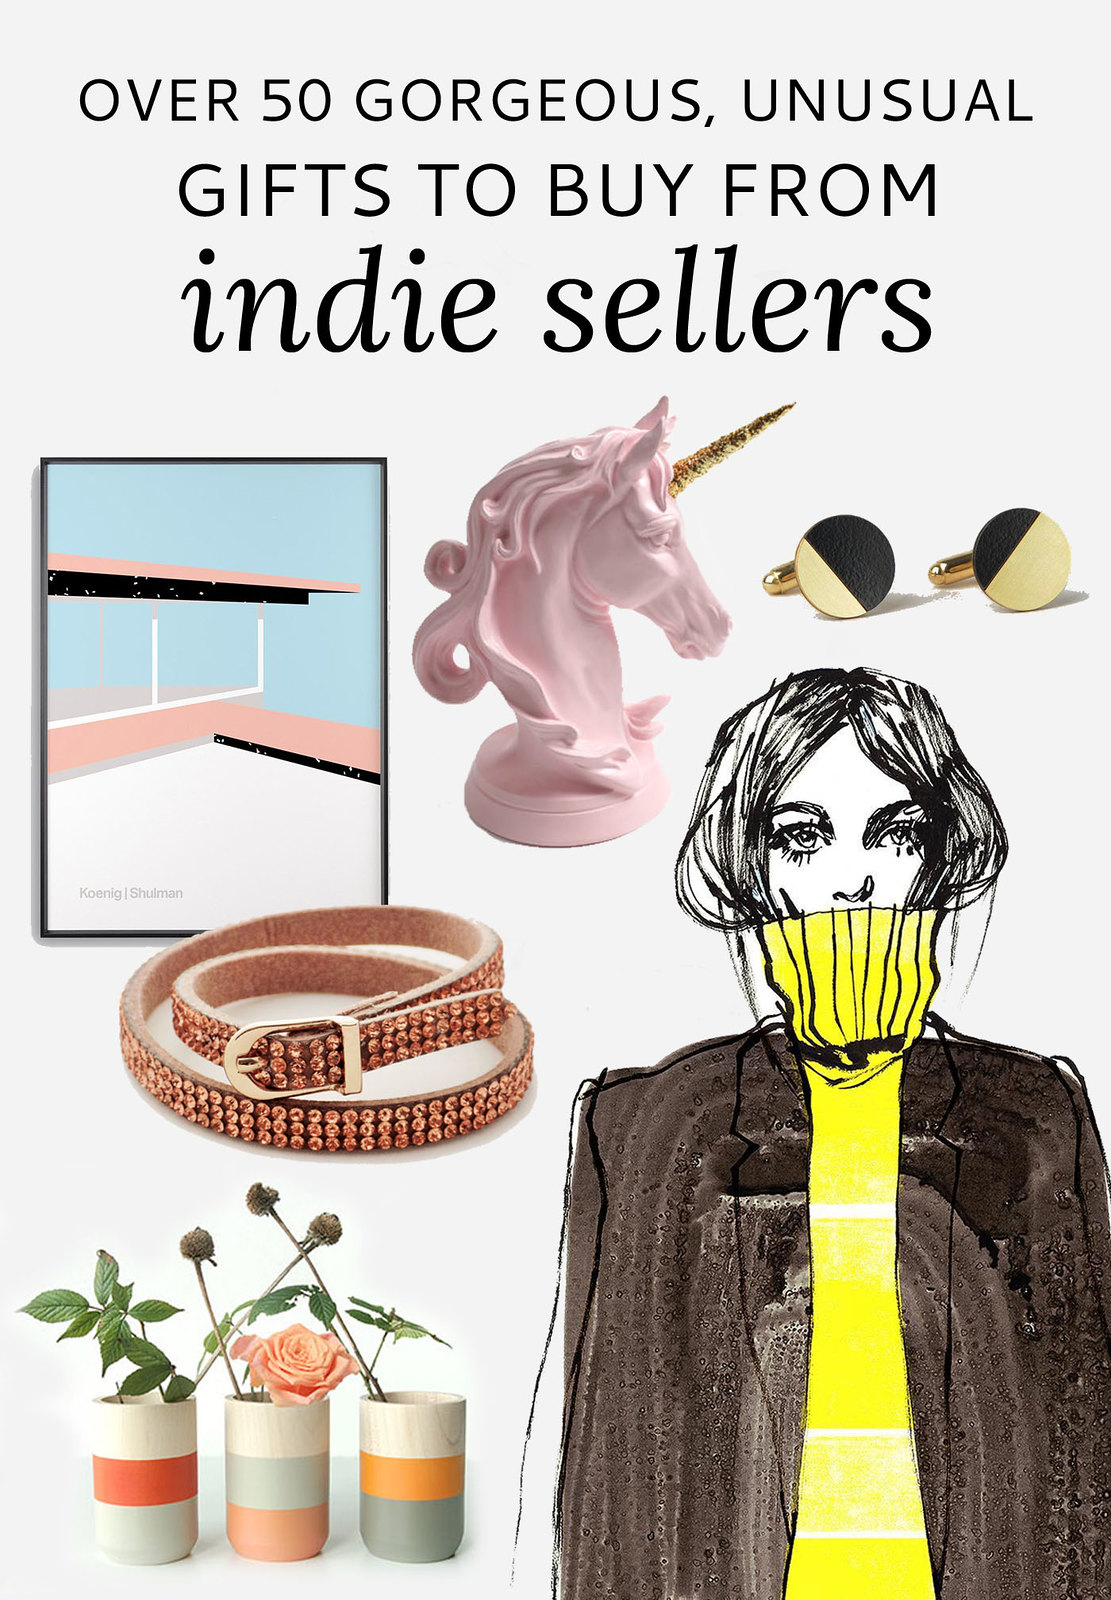 Over 50 Gorgeous, Unusual Gifts to Buy From 7 Indie Sellers (Black Friday Discounts) | Not Dressed As Lamb